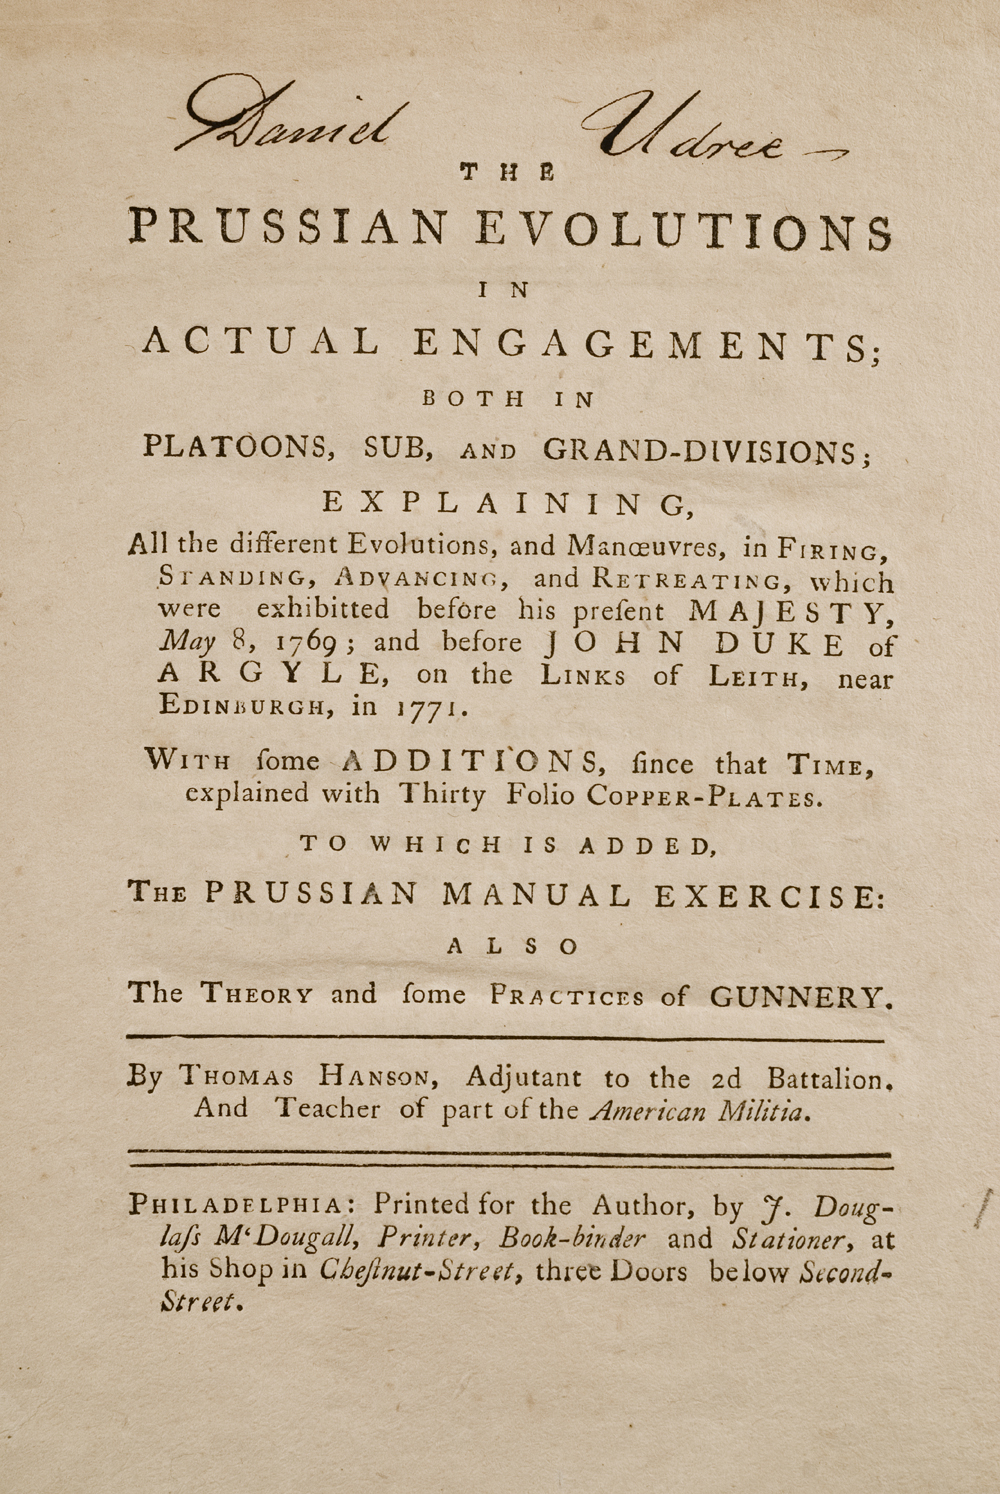 <em>The Prussian Evolutions in Actual Engagements</em> by Thomas Hanson, 1775